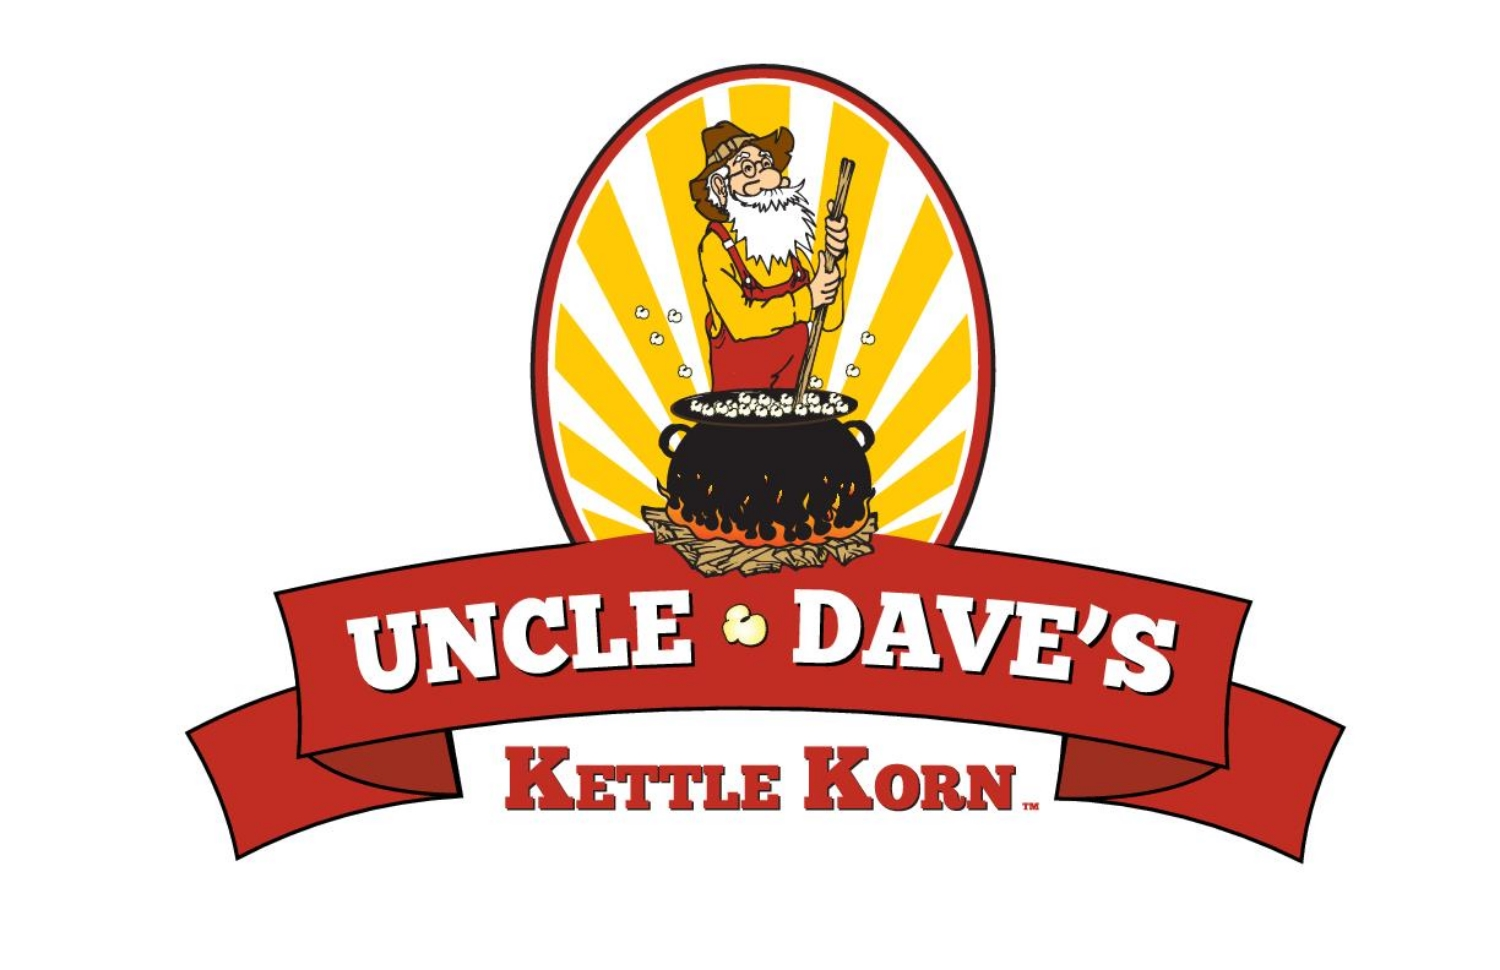 Uncle Dave's Kettle Korn